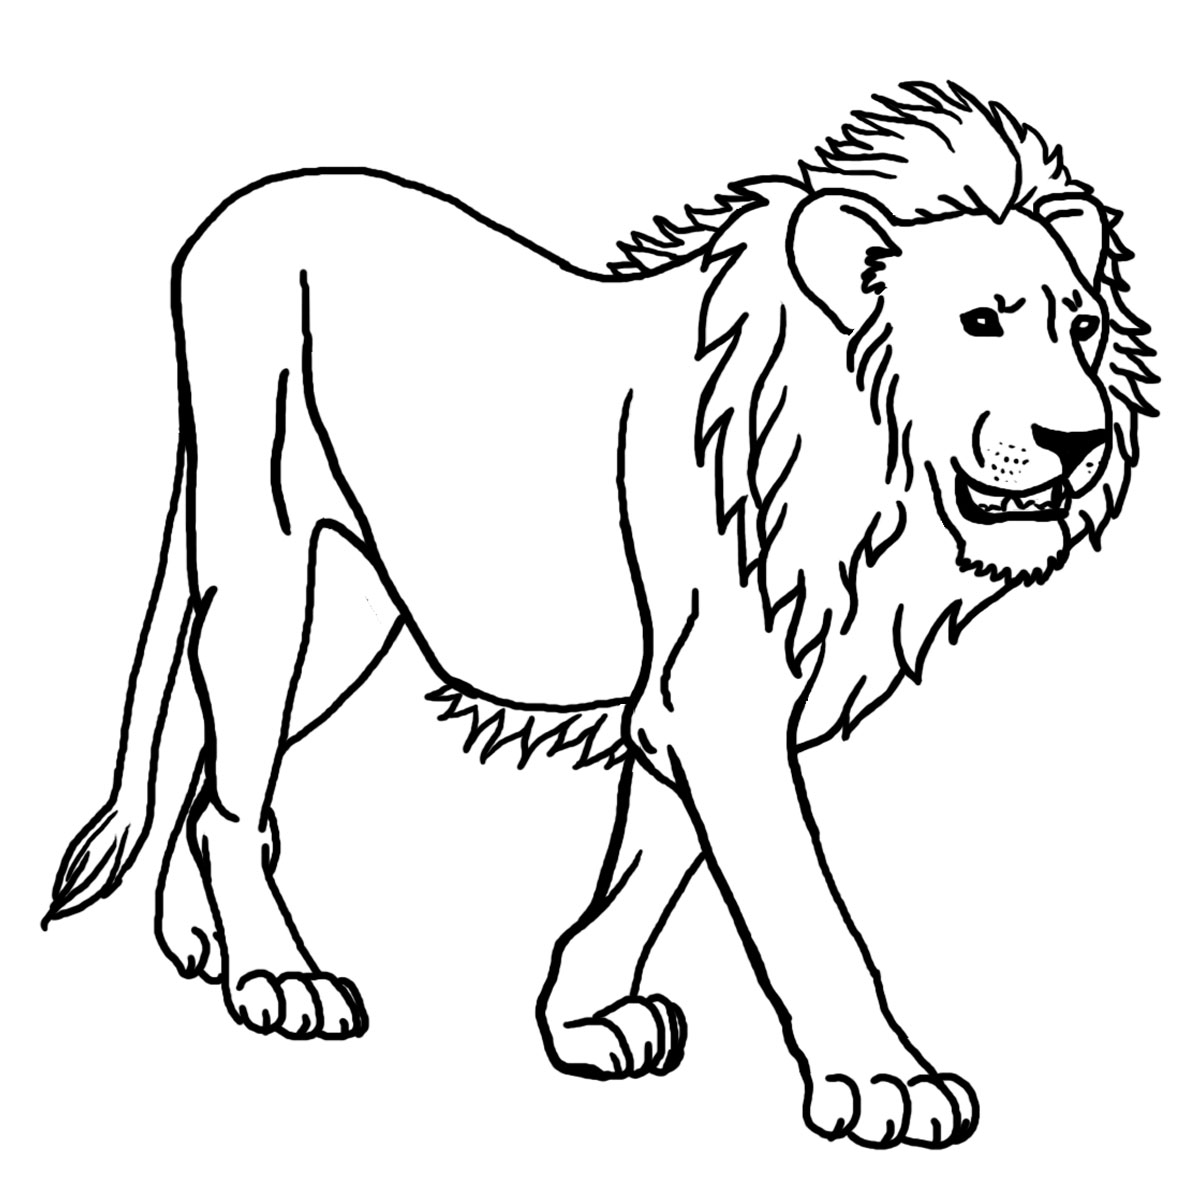 lion coloring pages to print - Coloring Page Lion